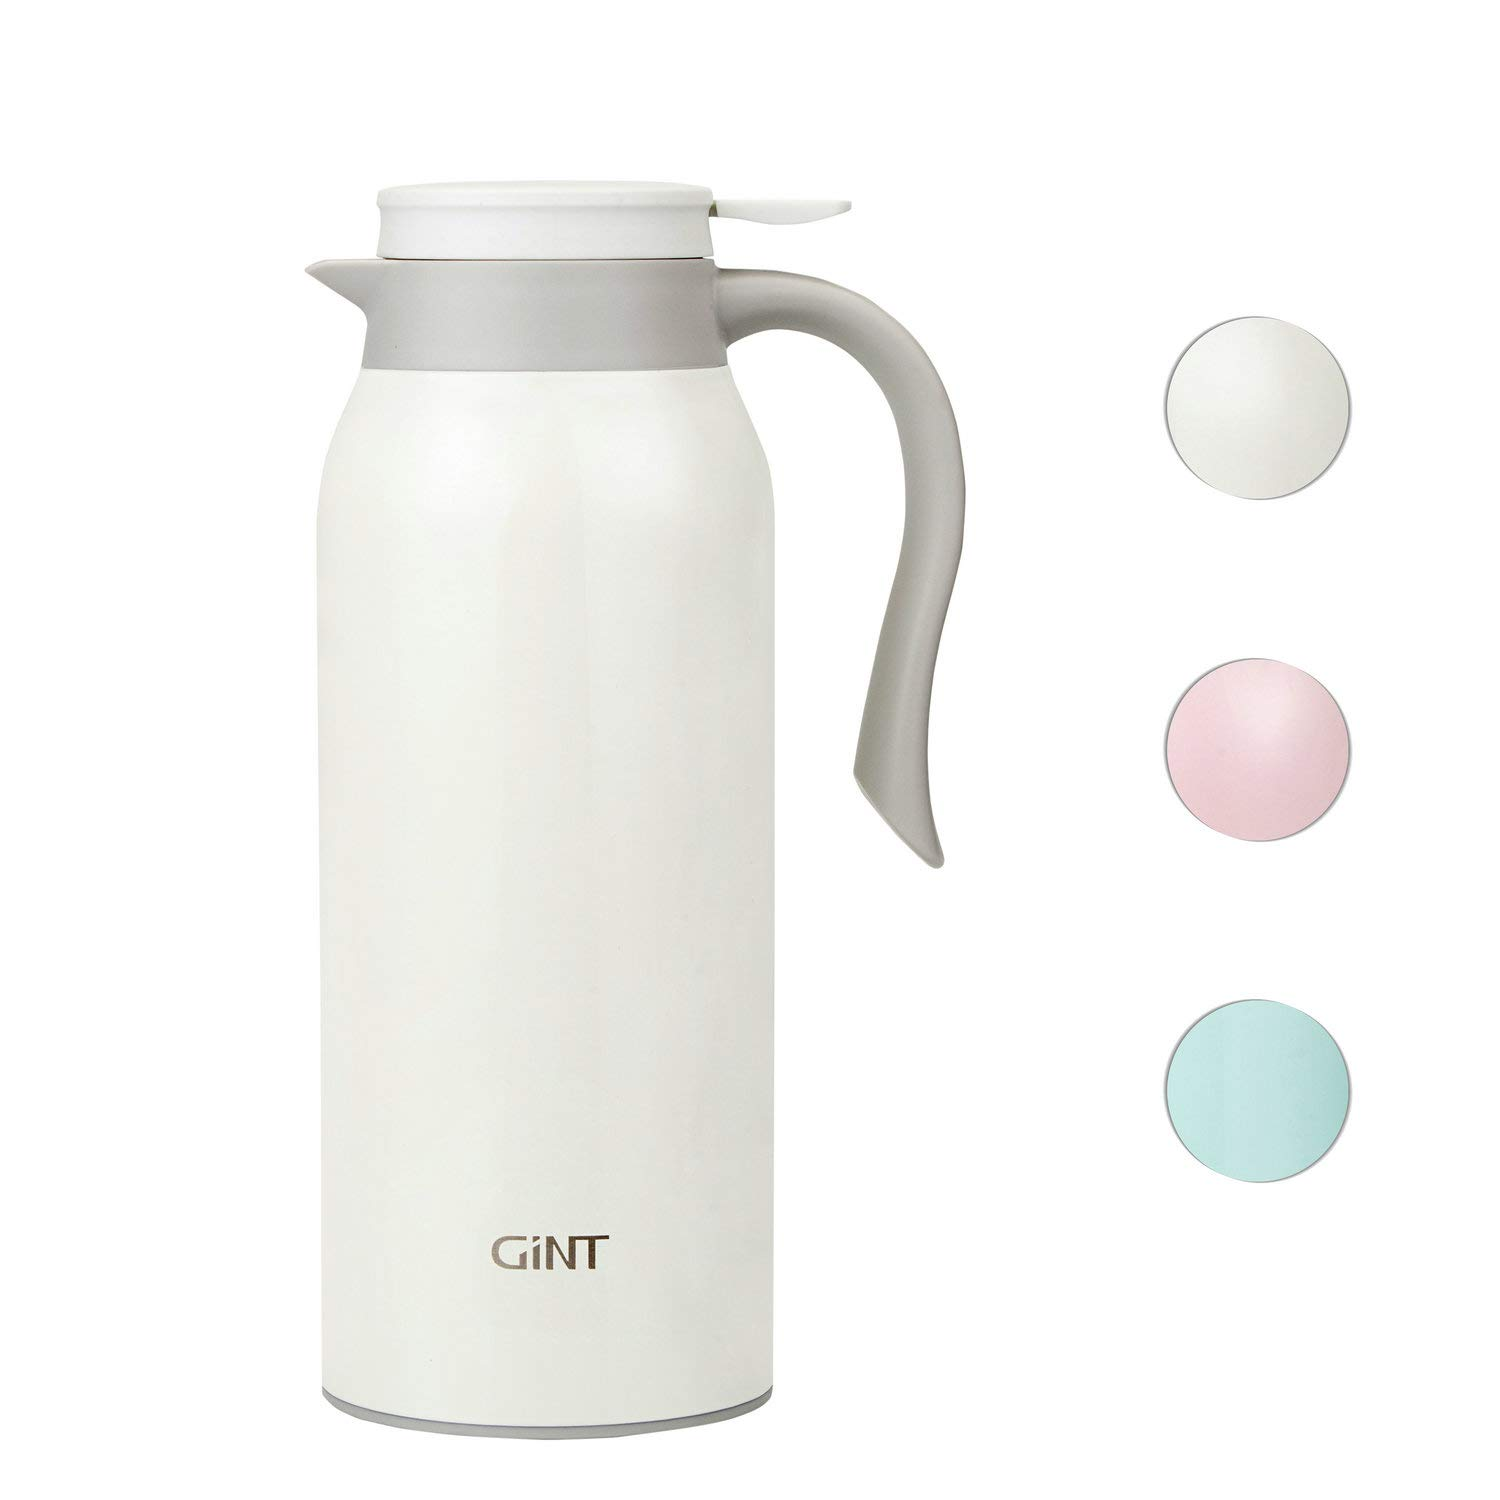 GiNT 51 Oz Stainless Steel Thermal Coffee Carafe, Double Walled Vacuum Thermos, 12 Hour Heat Retention, 1.5 Liter Tea, Water, and Coffee Dispenser, White